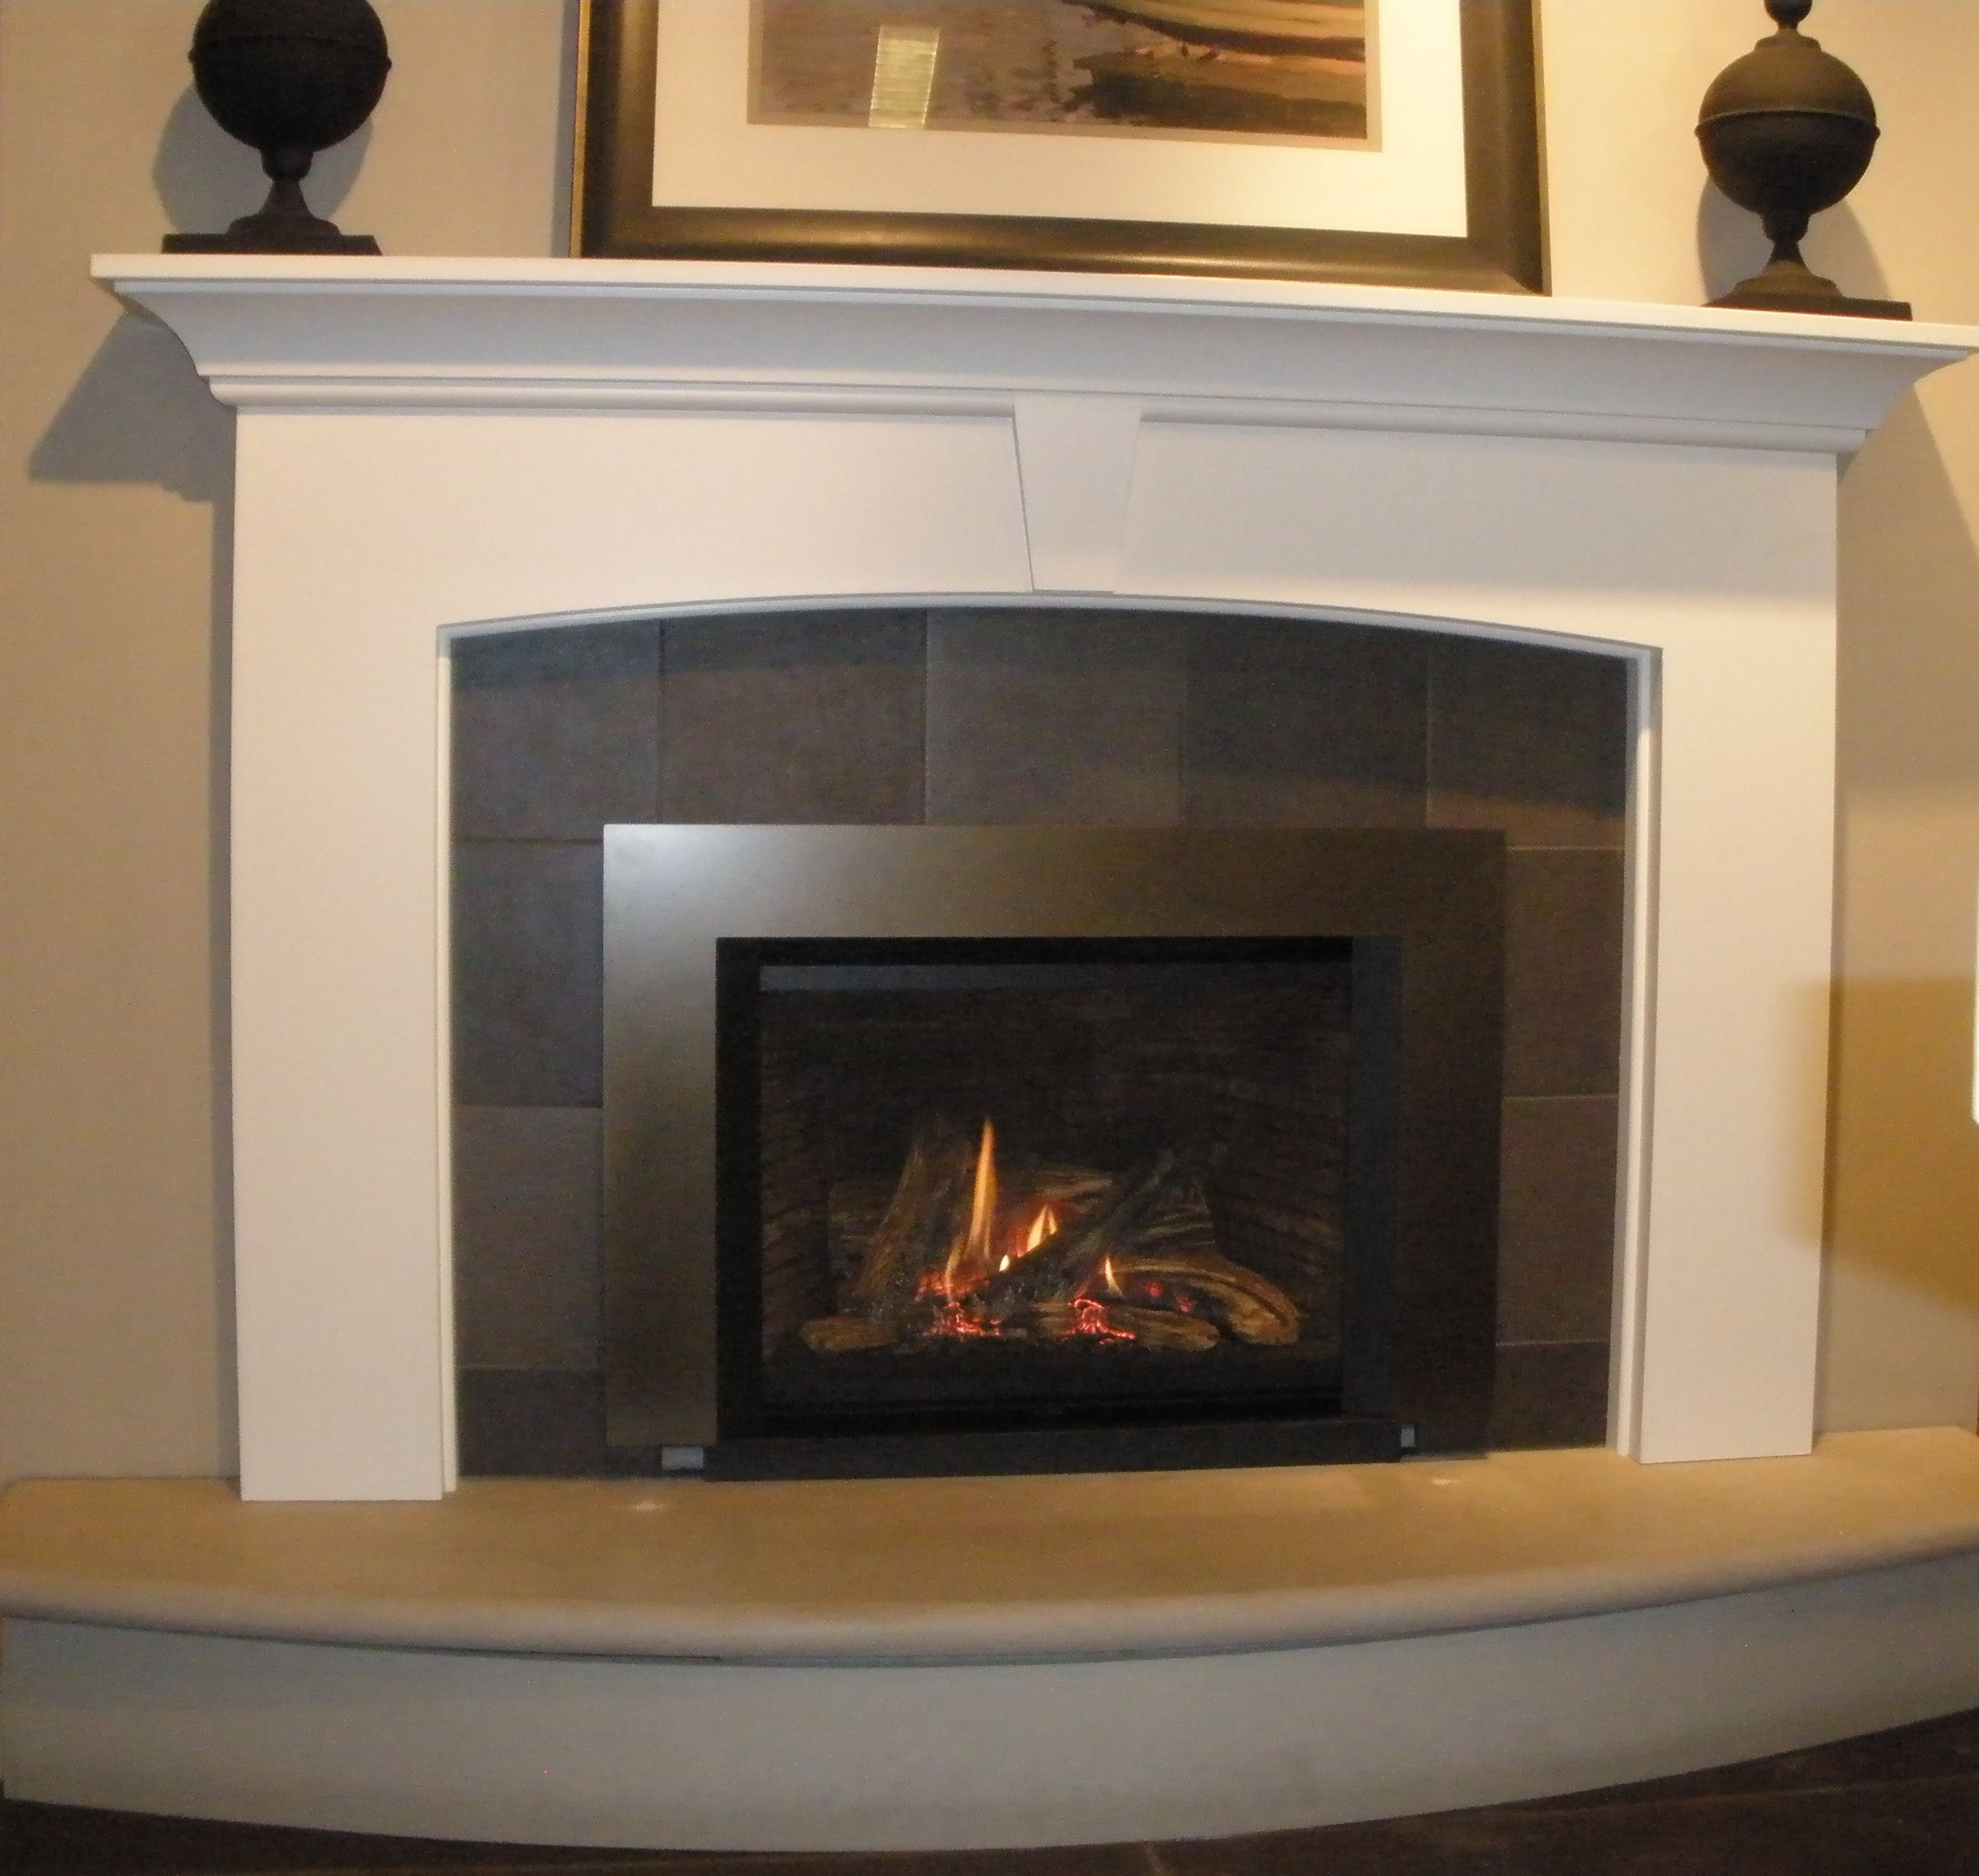 Valor G4 785jln Gas Fireplace Insert With 5 Bronze Trim Surround